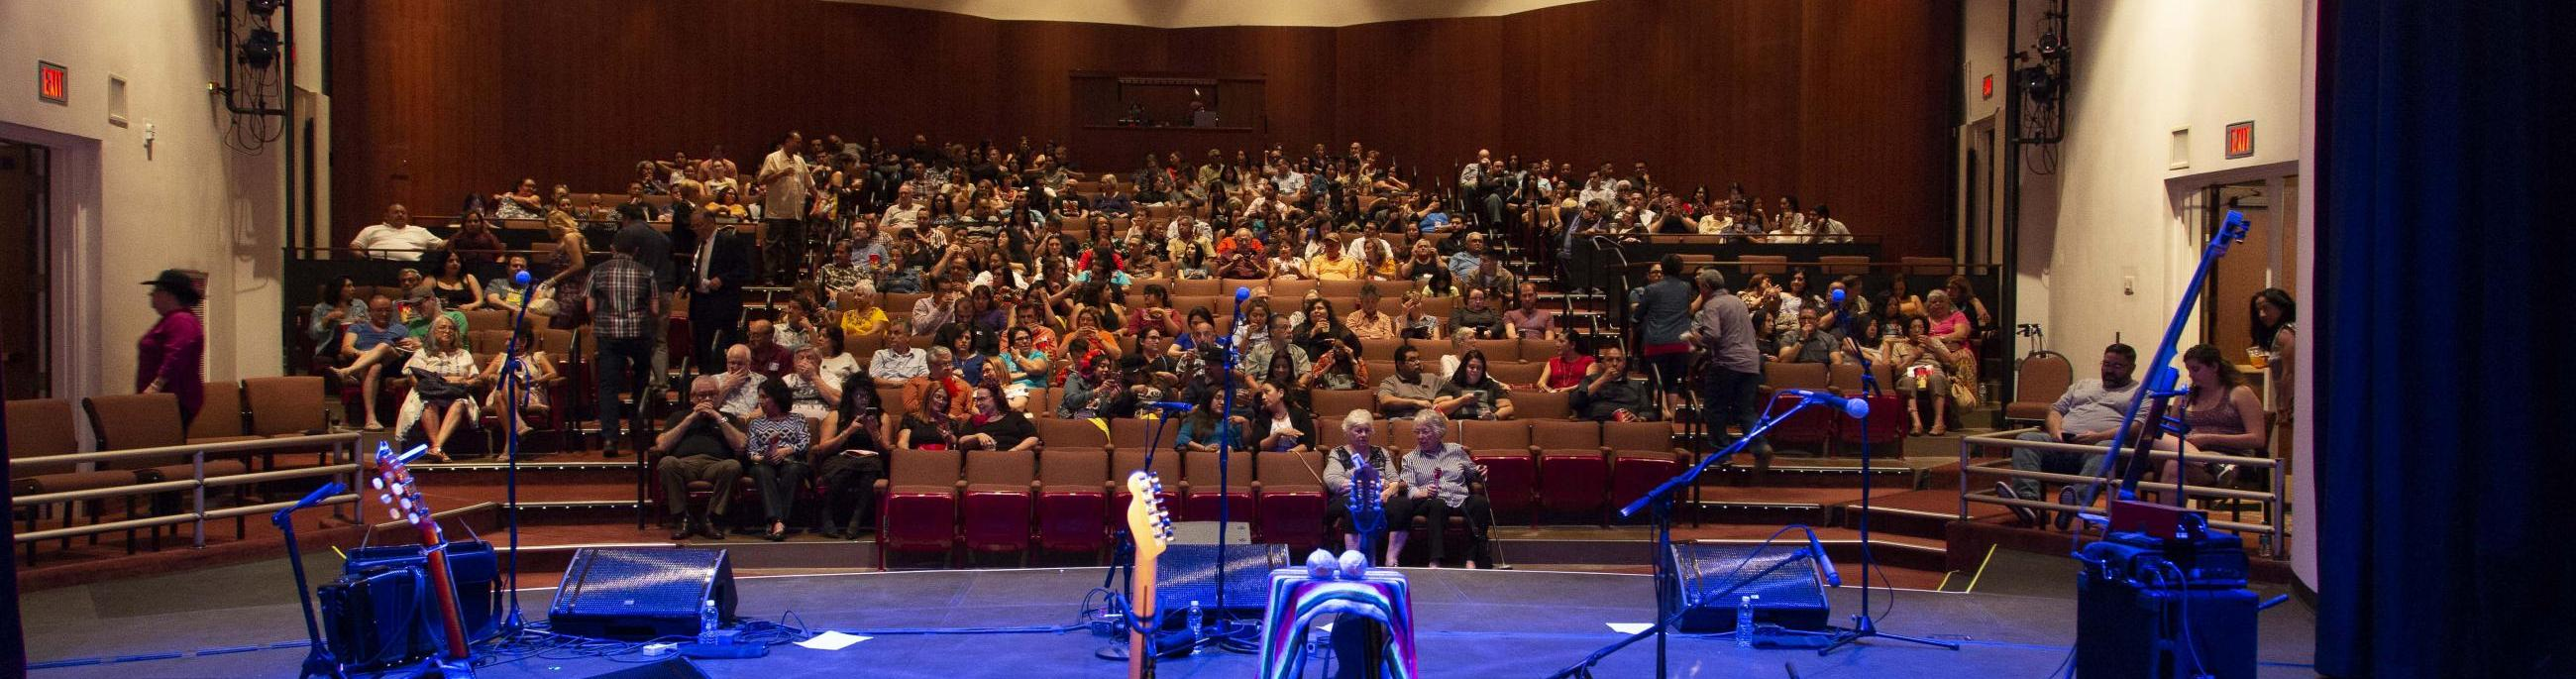 The Hal Bogle Theatre Rental creates an inviting and intimate atmosphere for smaller concerts